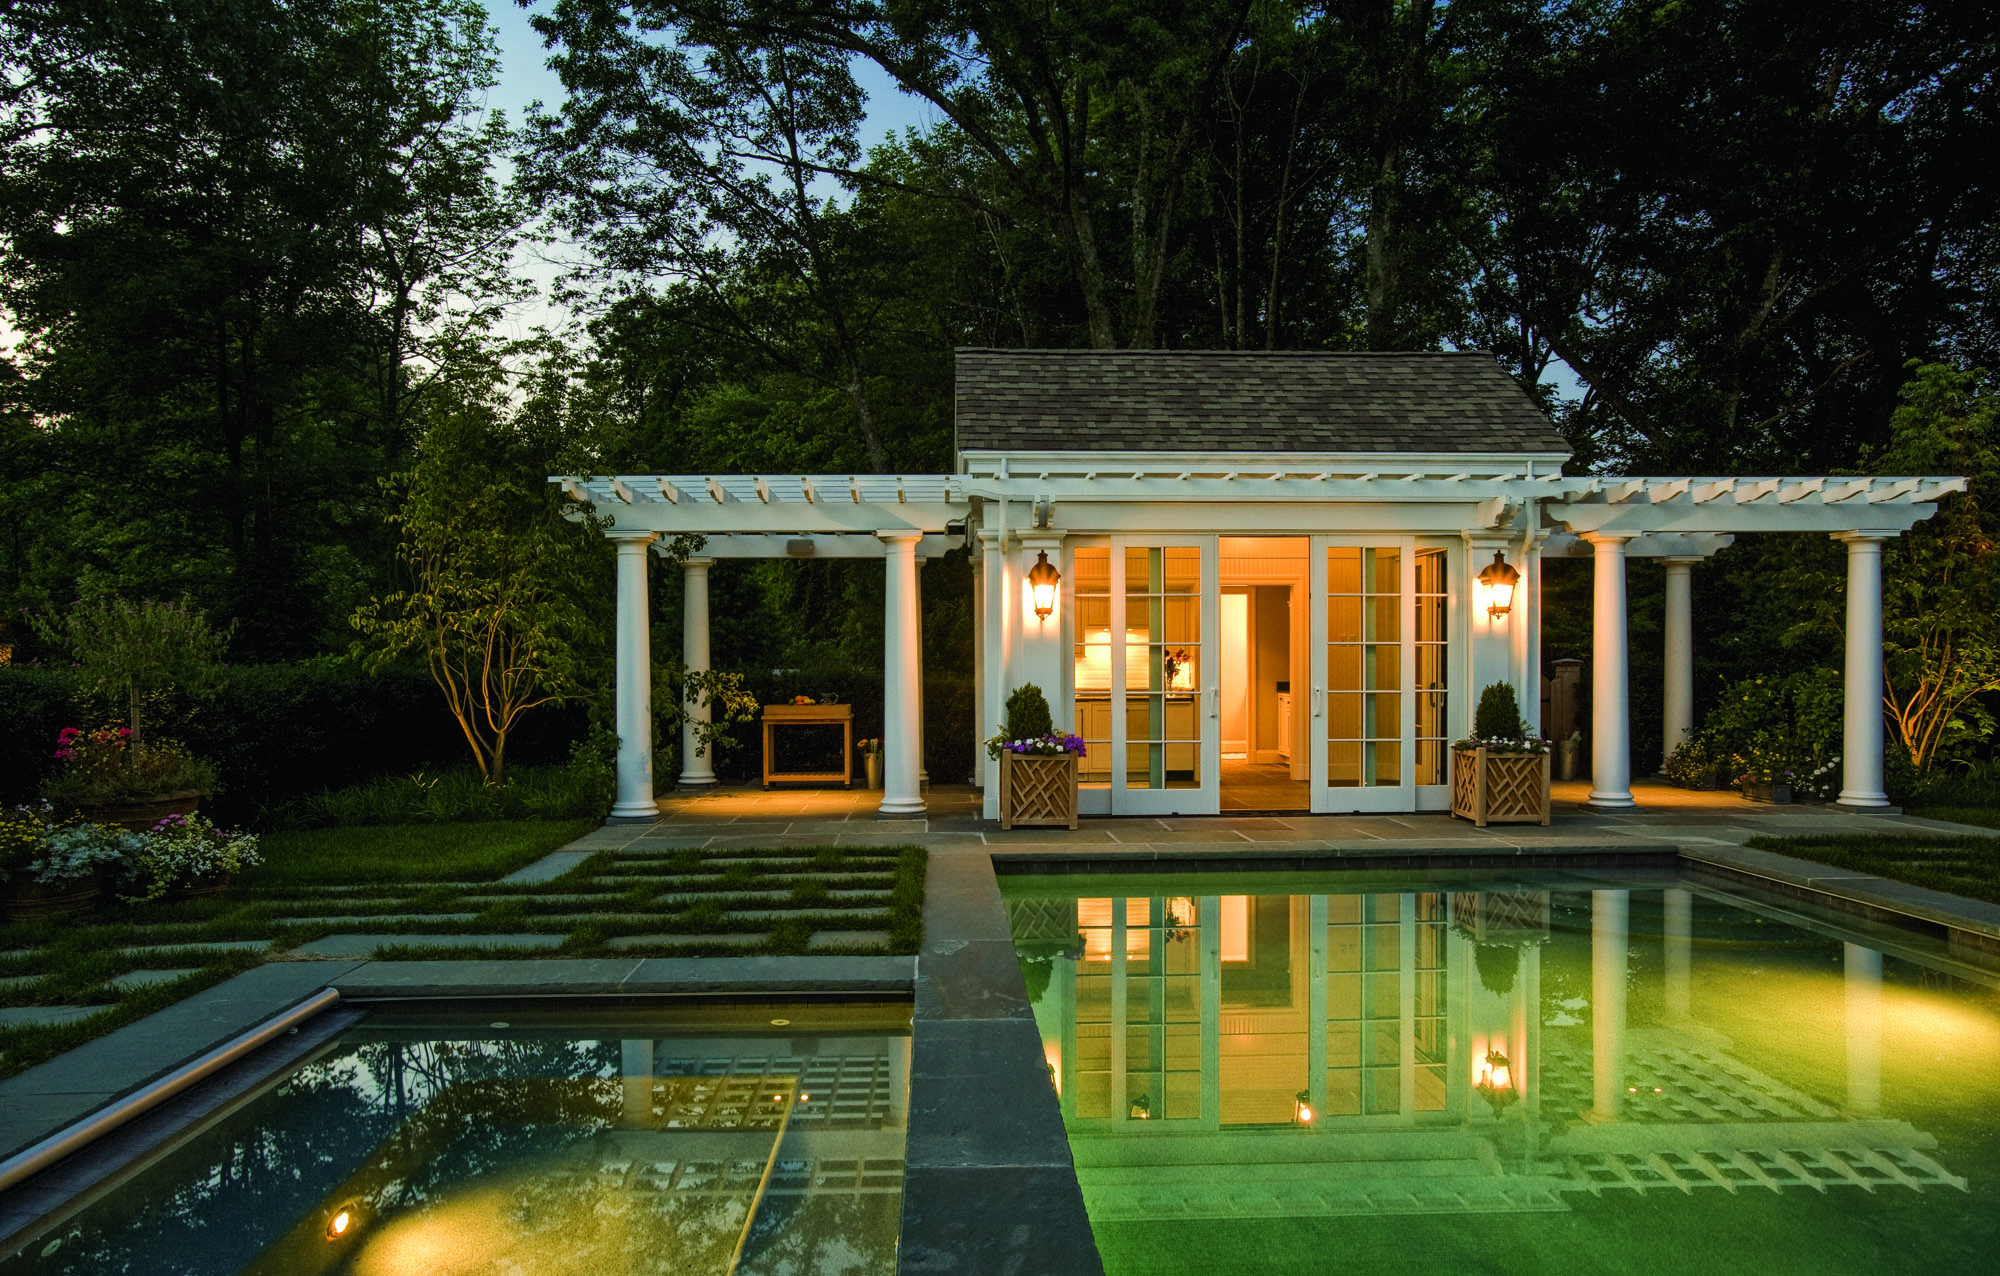 The pool house has perfect classical proportions and offers symmetry to the garden.